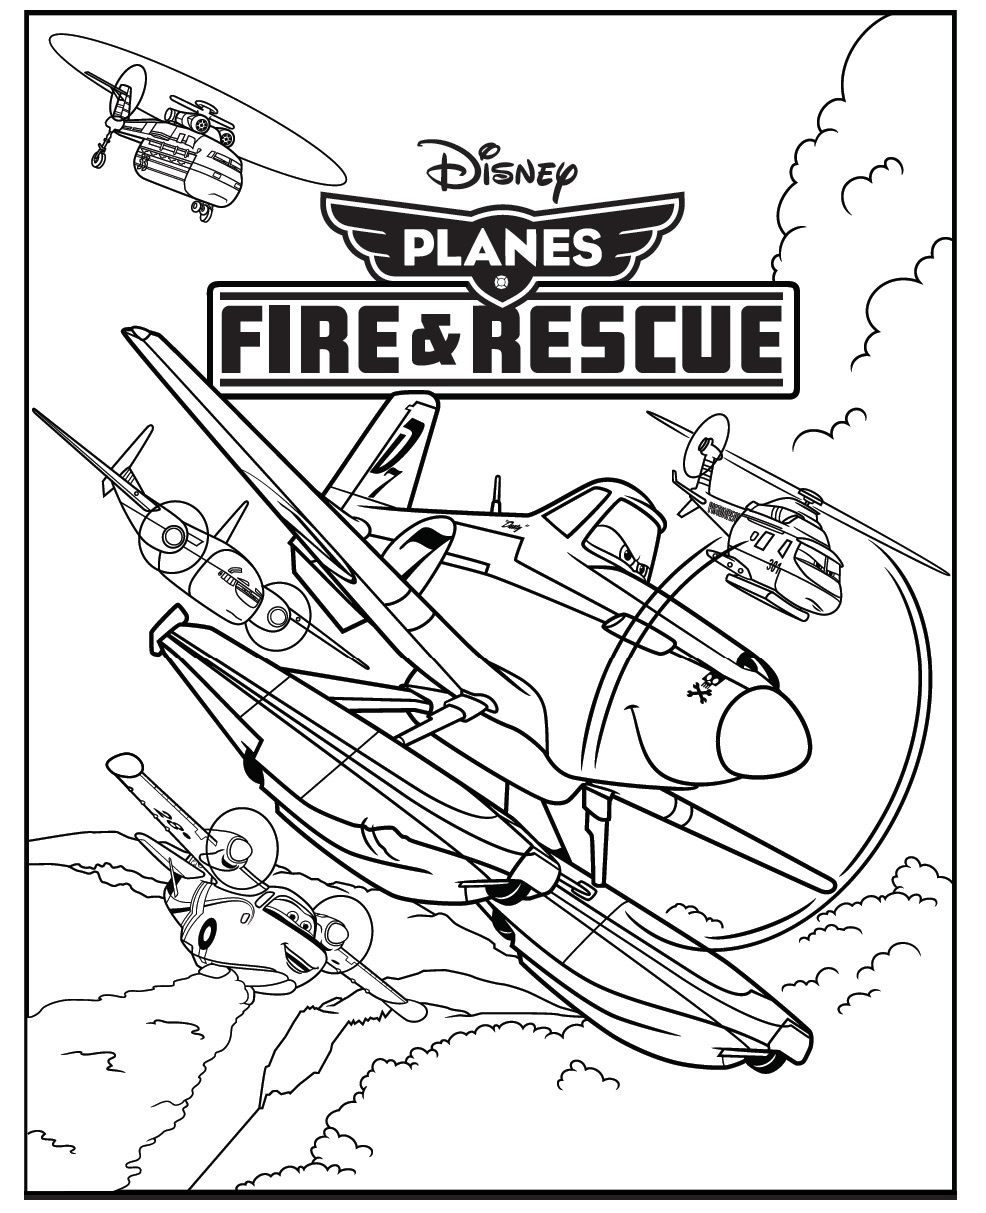 Disney Planes 2 Printable Activity Sheets | Planes, Planes party and ...